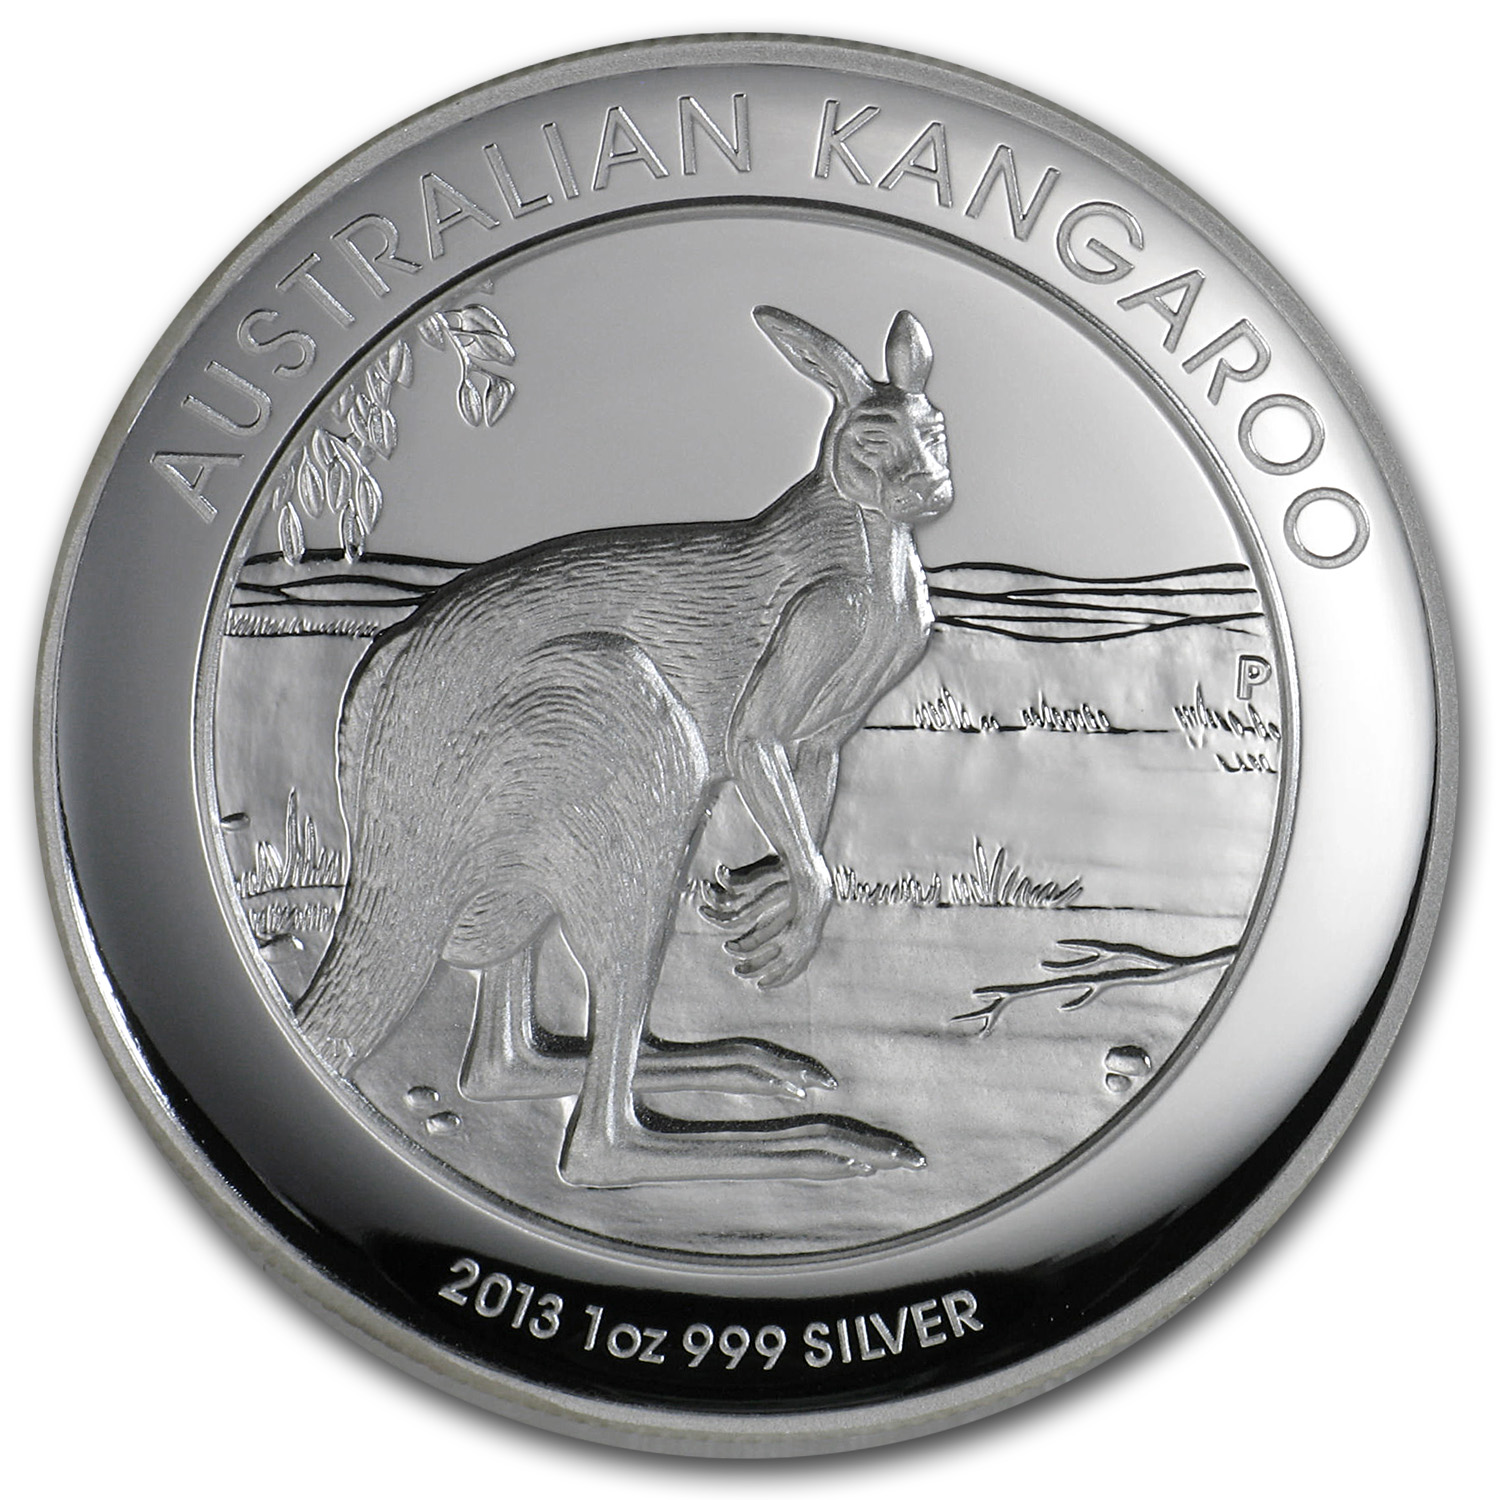 2013 Australia 1 oz Silver Kangaroo Proof (High Relief)